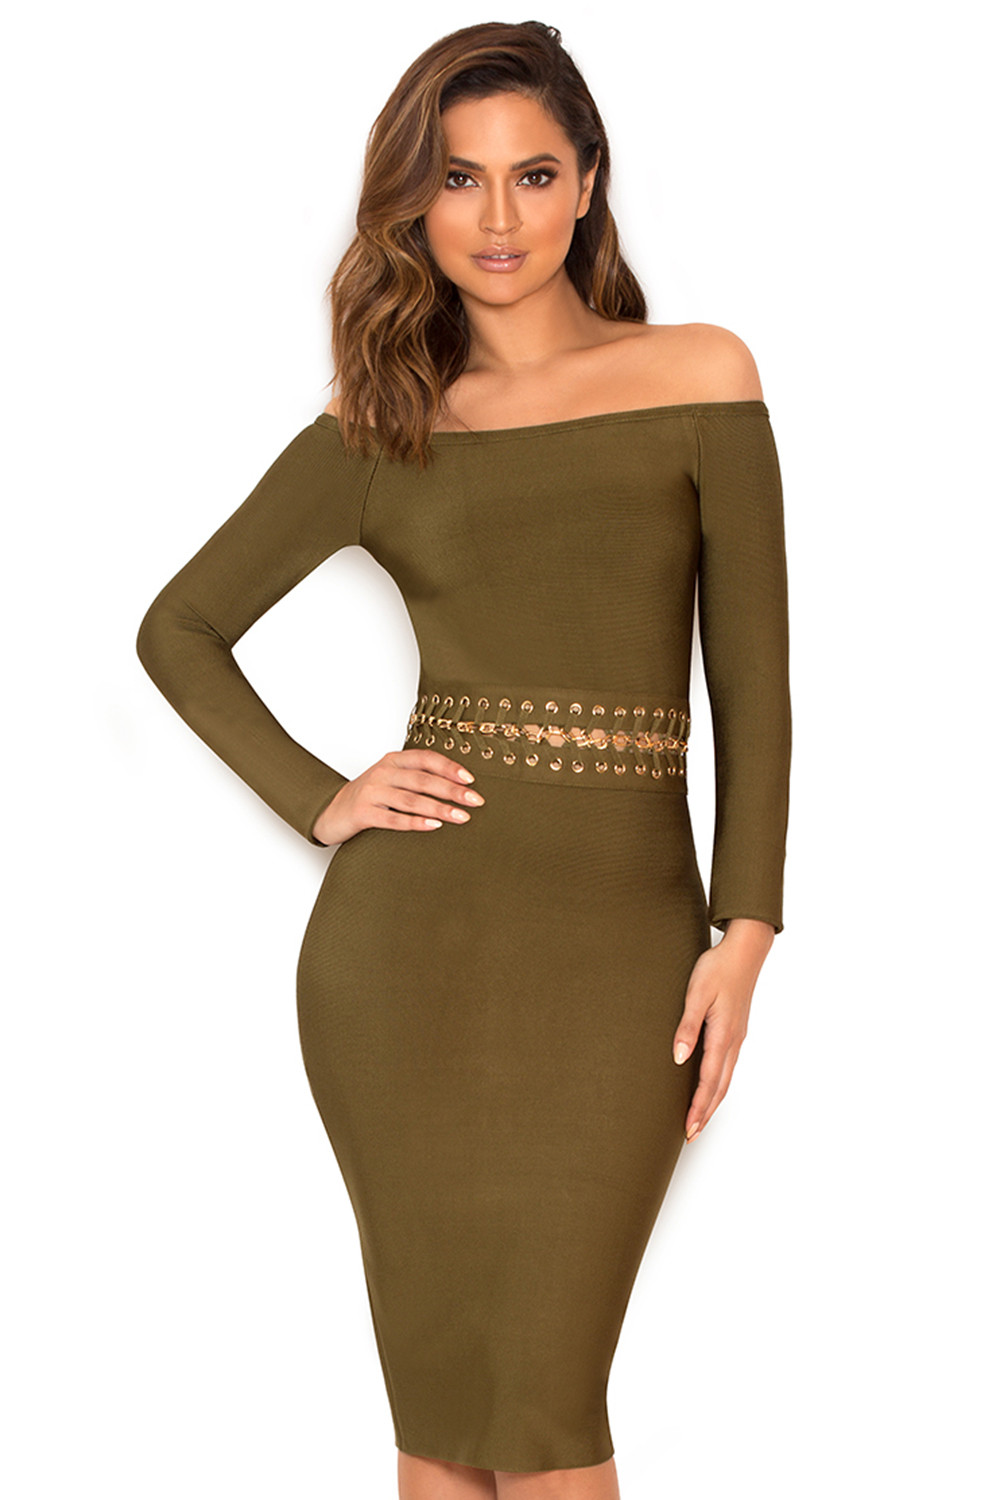 7a6bee29cea6 Clothing   Bandage Dresses    Jadzia  Khaki Off Shoulder Bandage ...